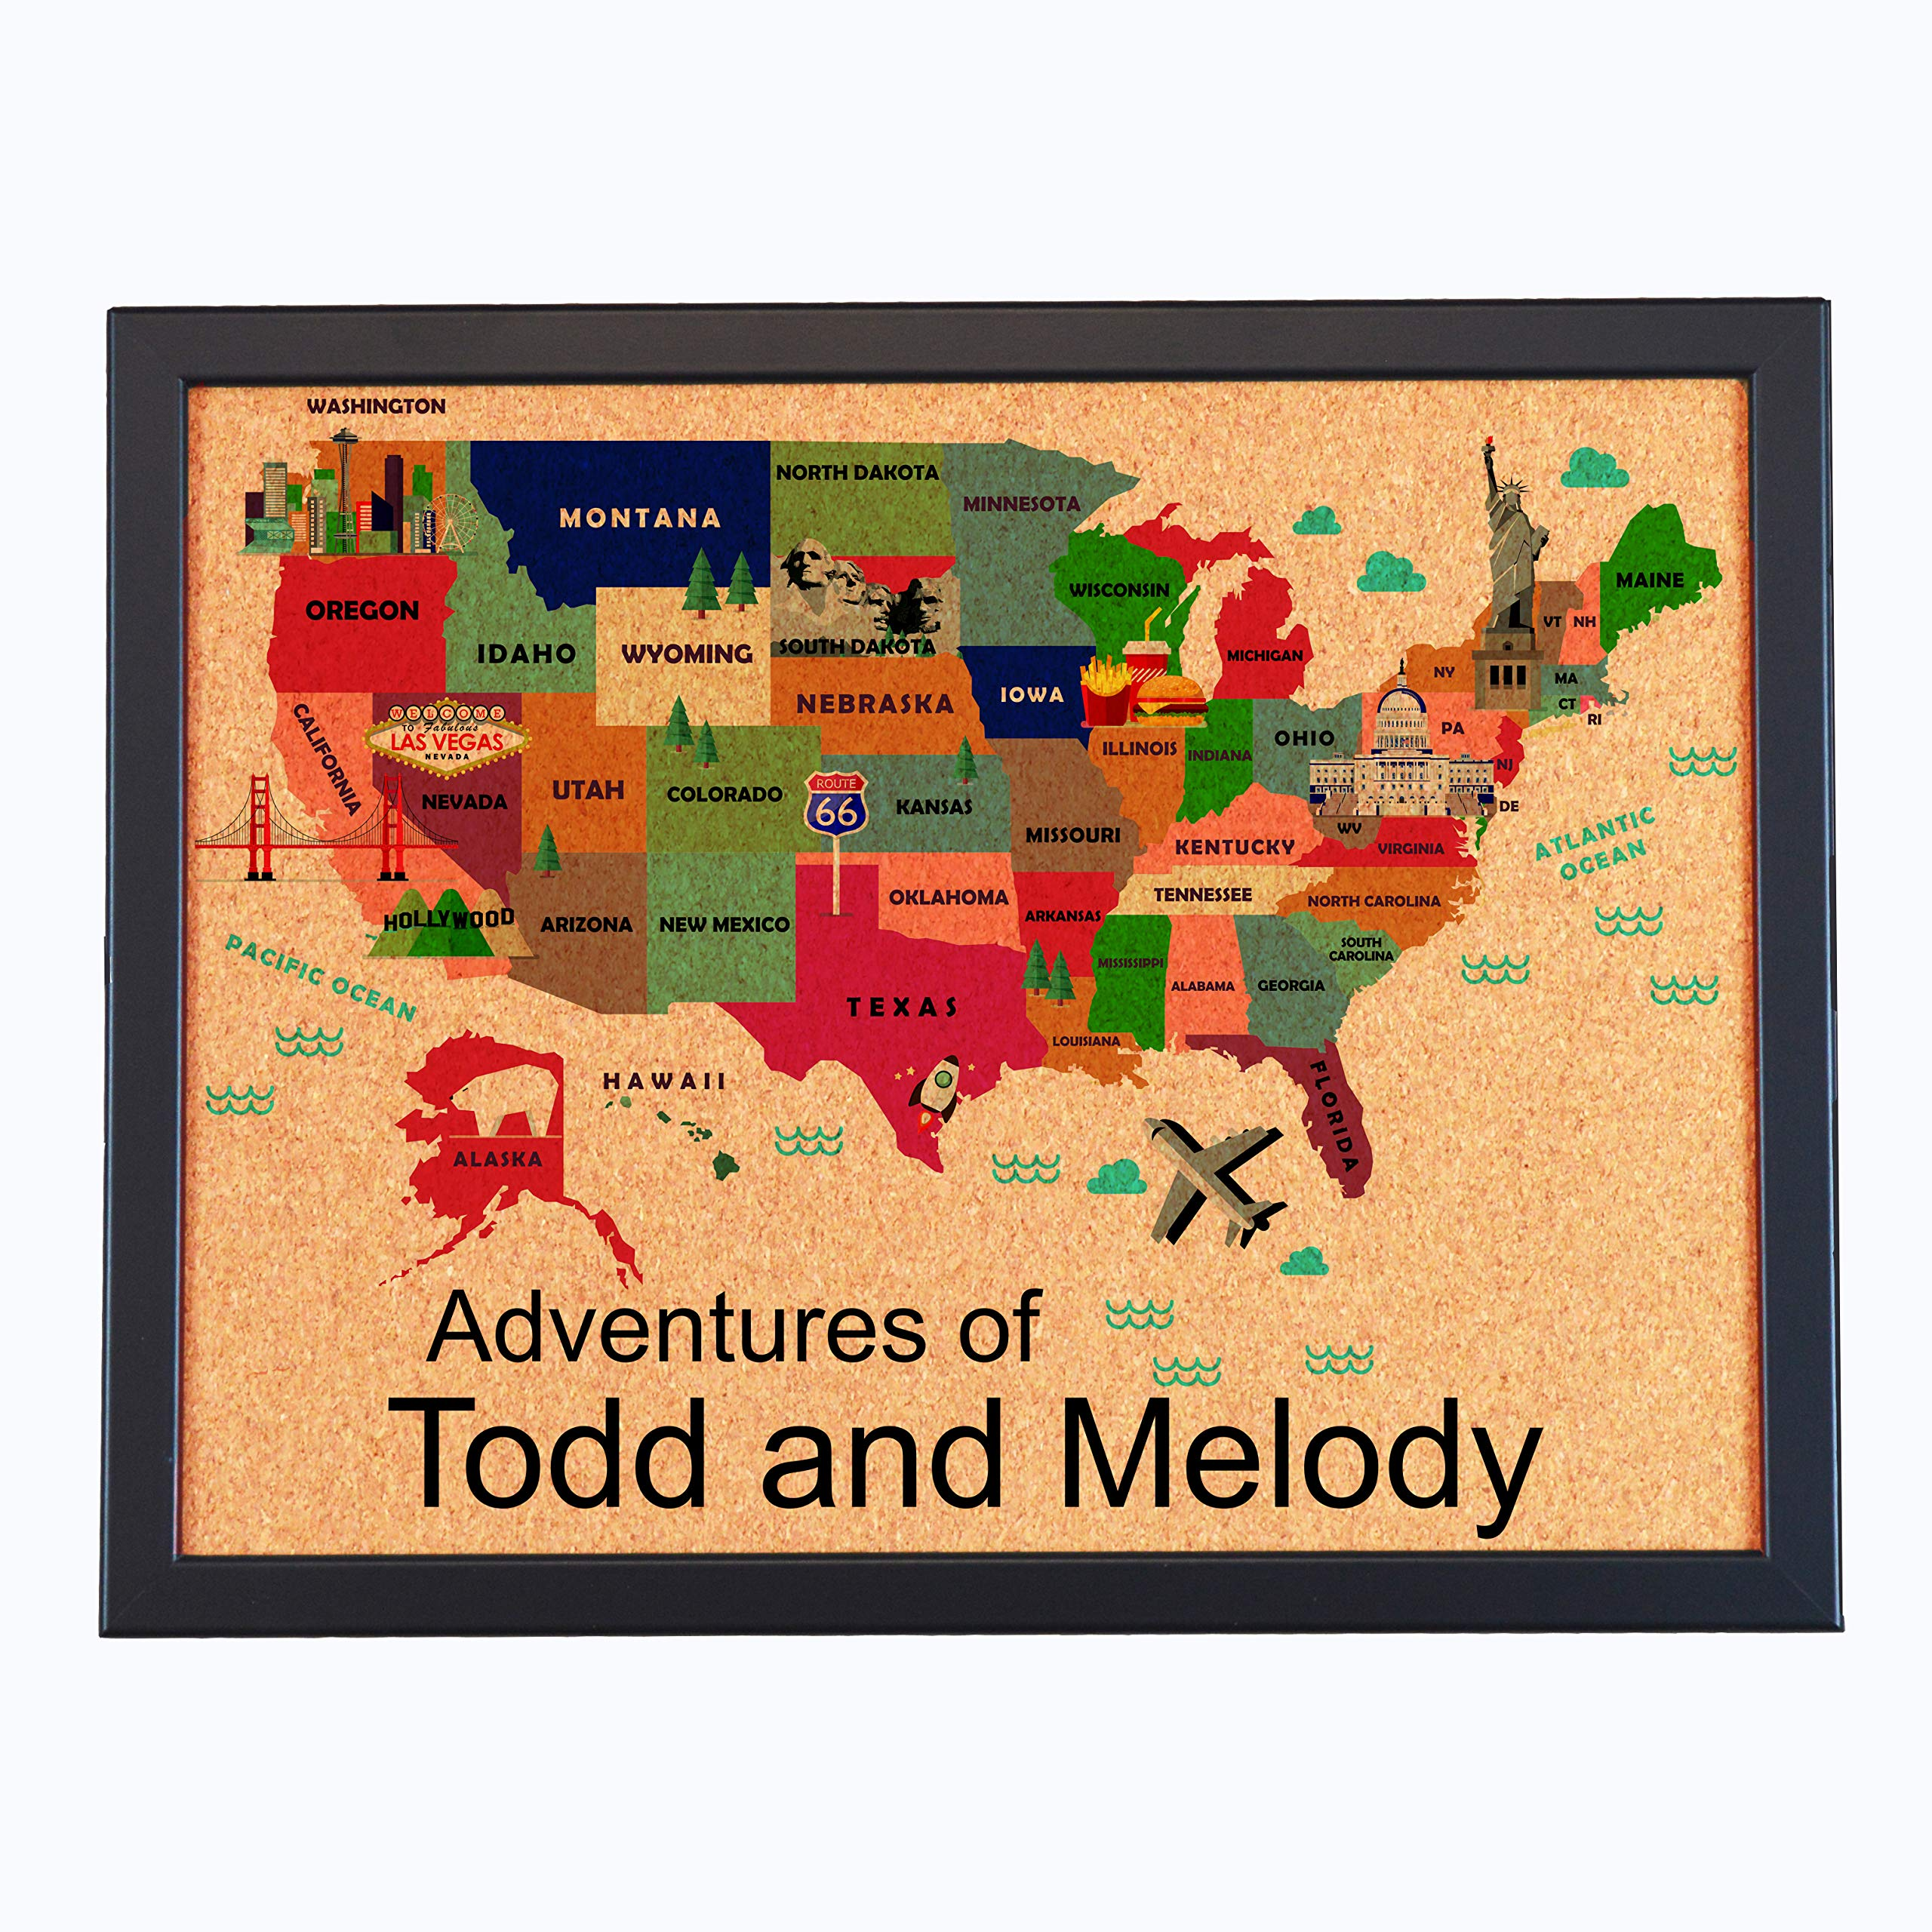 Custom Pushpin Board Map of USA with Landmarks, Adventures of (with Black Frame) by Lindsey Lou Patterns